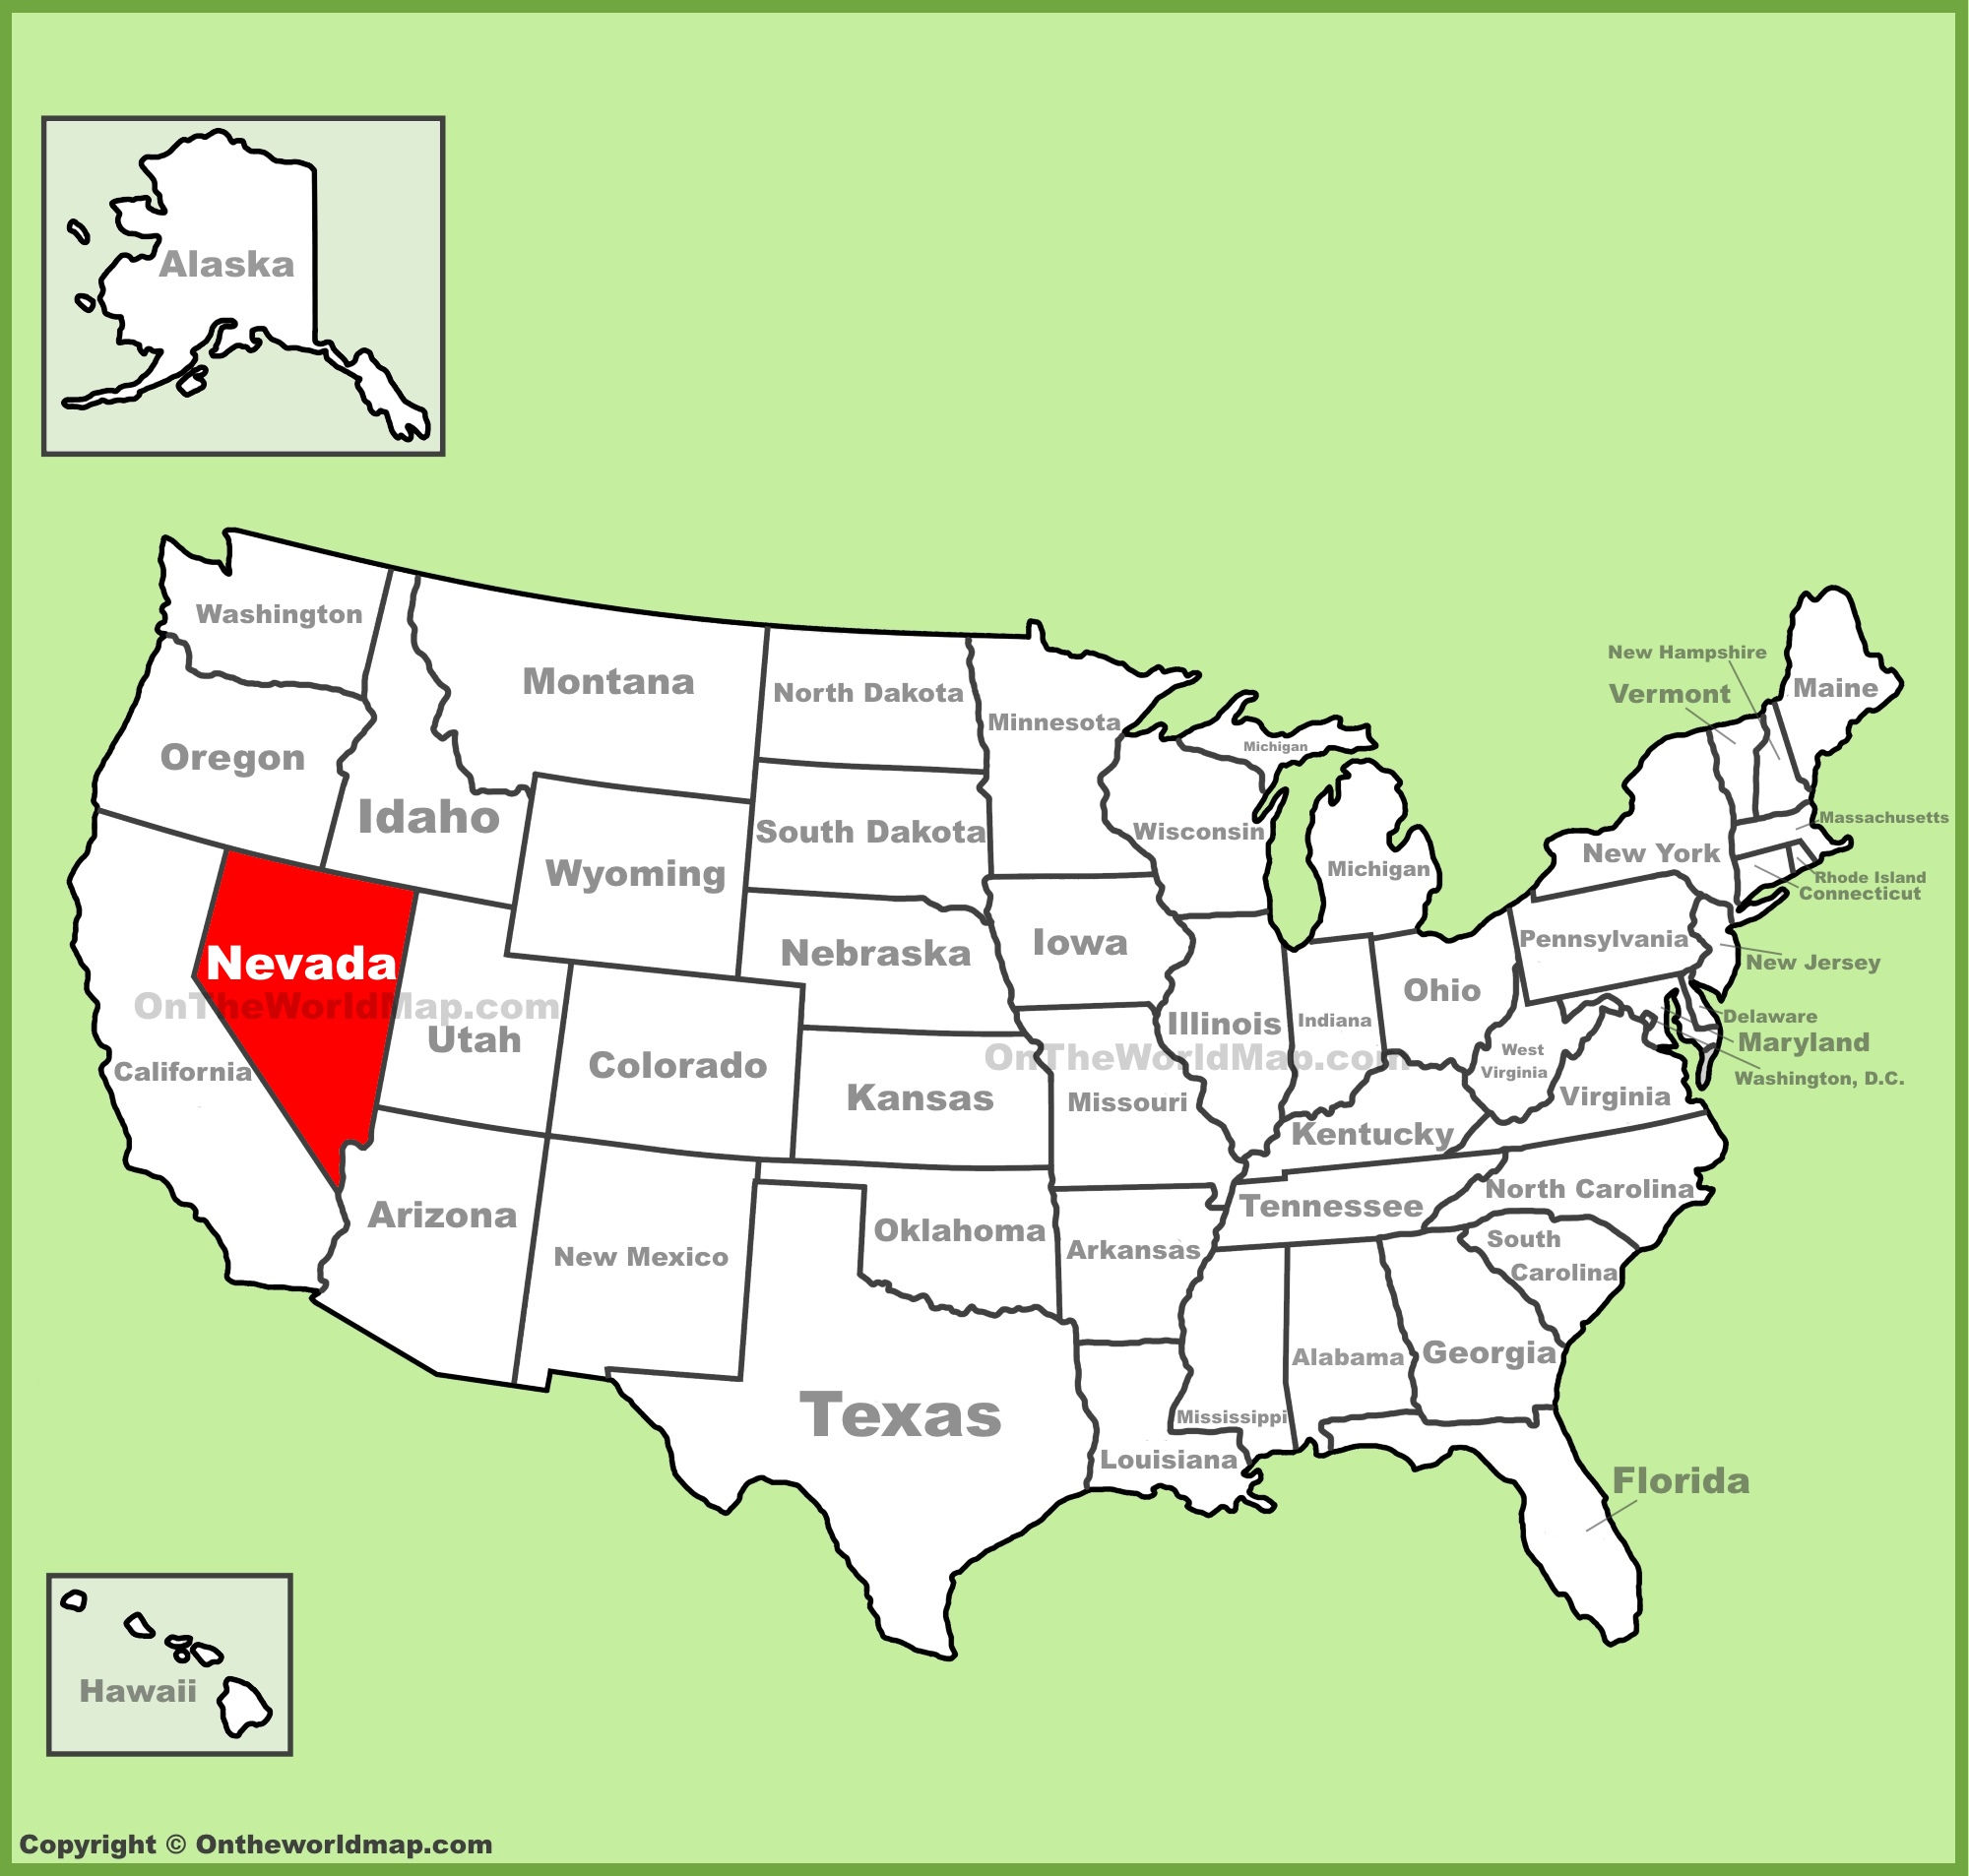 Nevada Location On The US Map - Nevada on us map